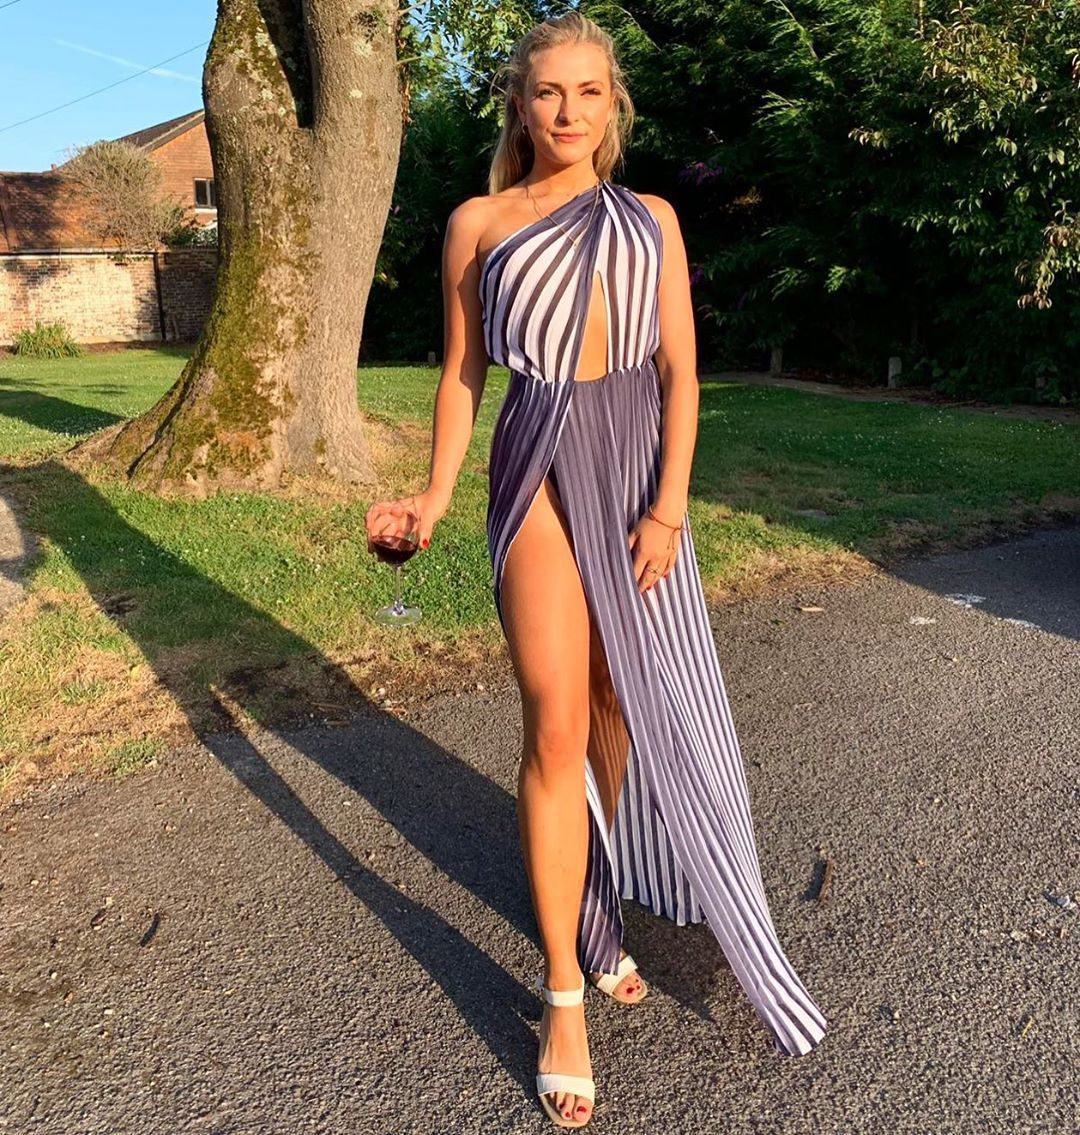 Image may contain: Made in Chelsea fake followers, Made in Chelsea, MIC, cast, Instagram, fake, followers, real, Verity Bowditch, comments, likes, Woman, Female, Human, Person, Clothing, Evening Dress, Fashion, Gown, Apparel, Robe